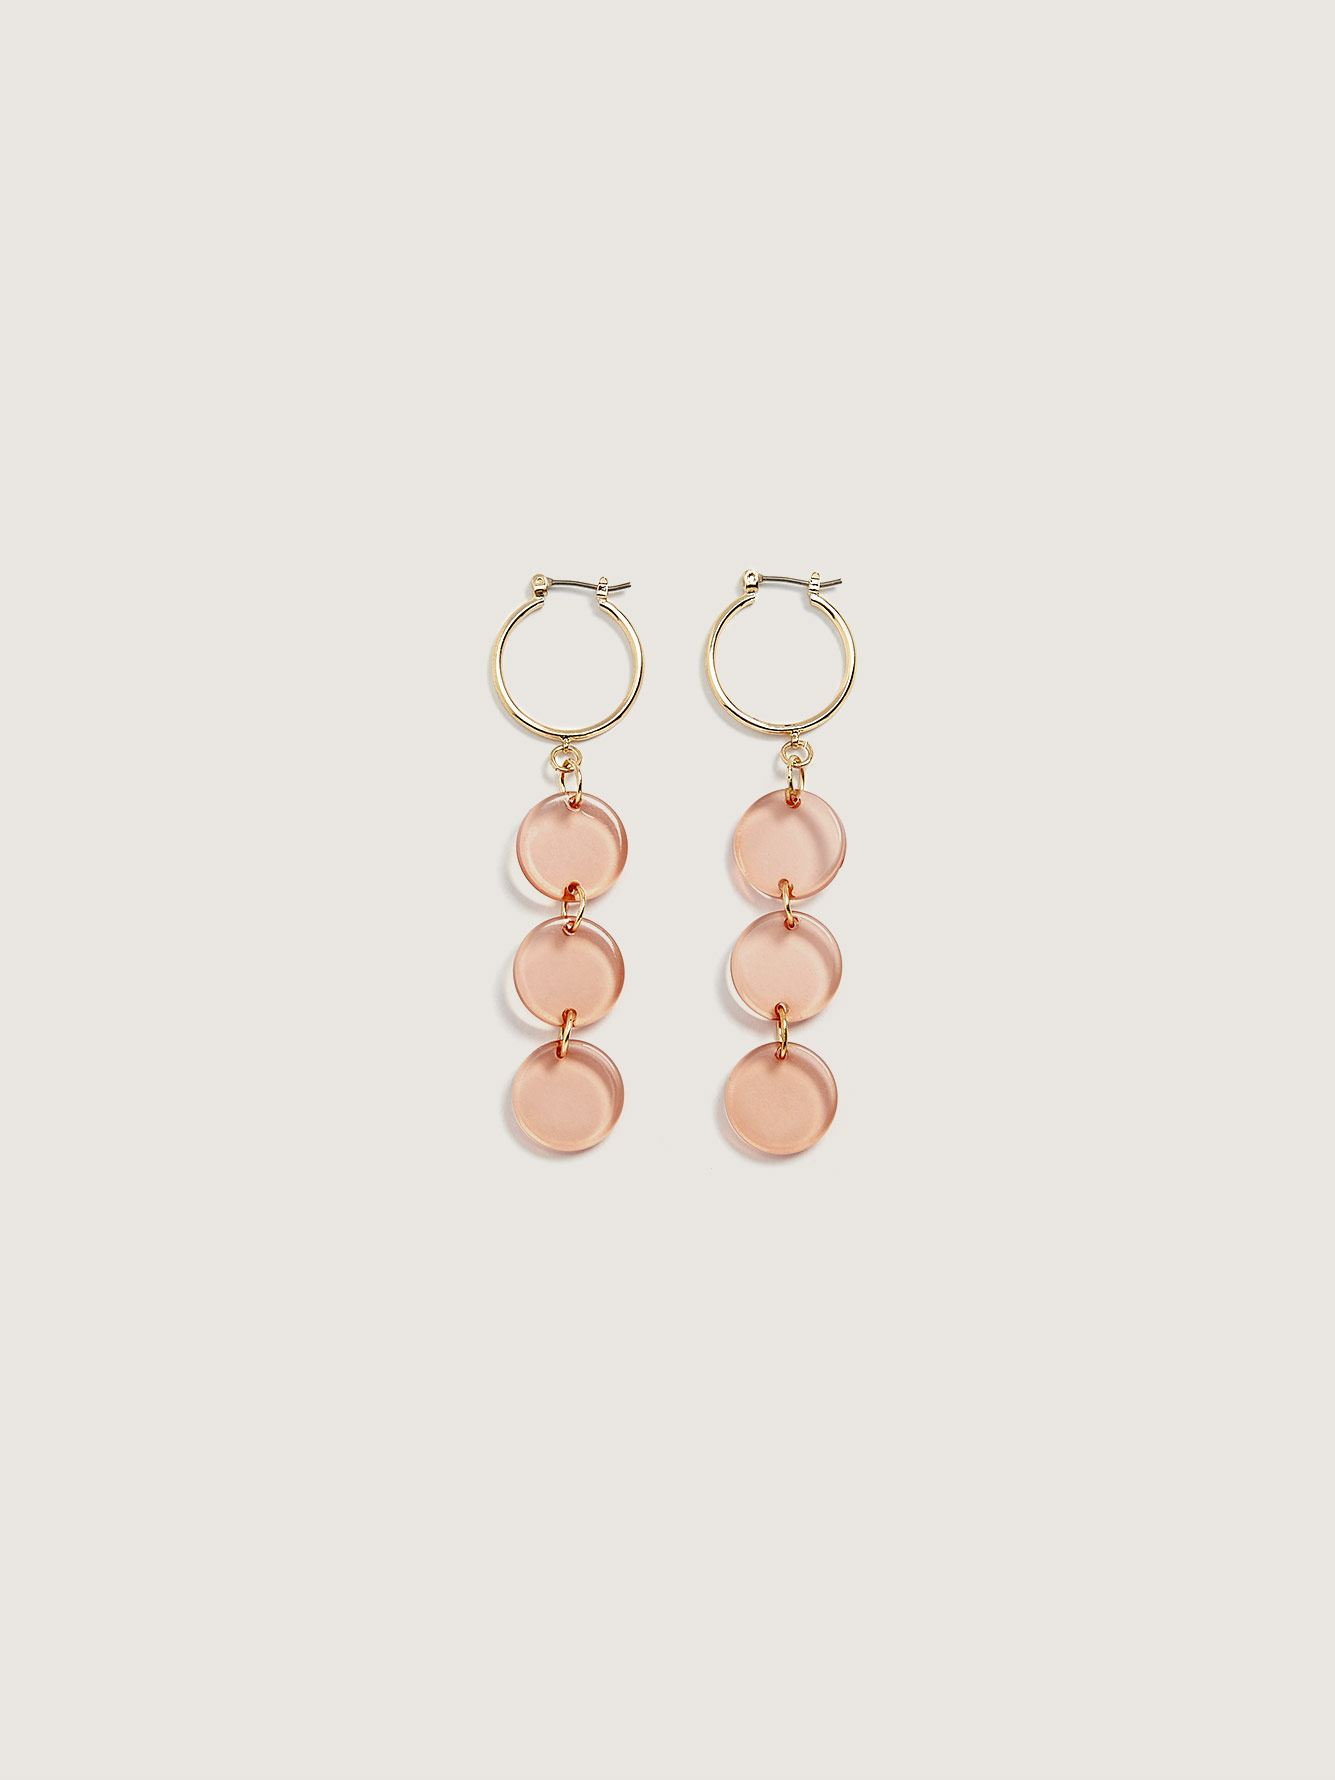 Circle Kira Hoop Earrings - Sundara Mar